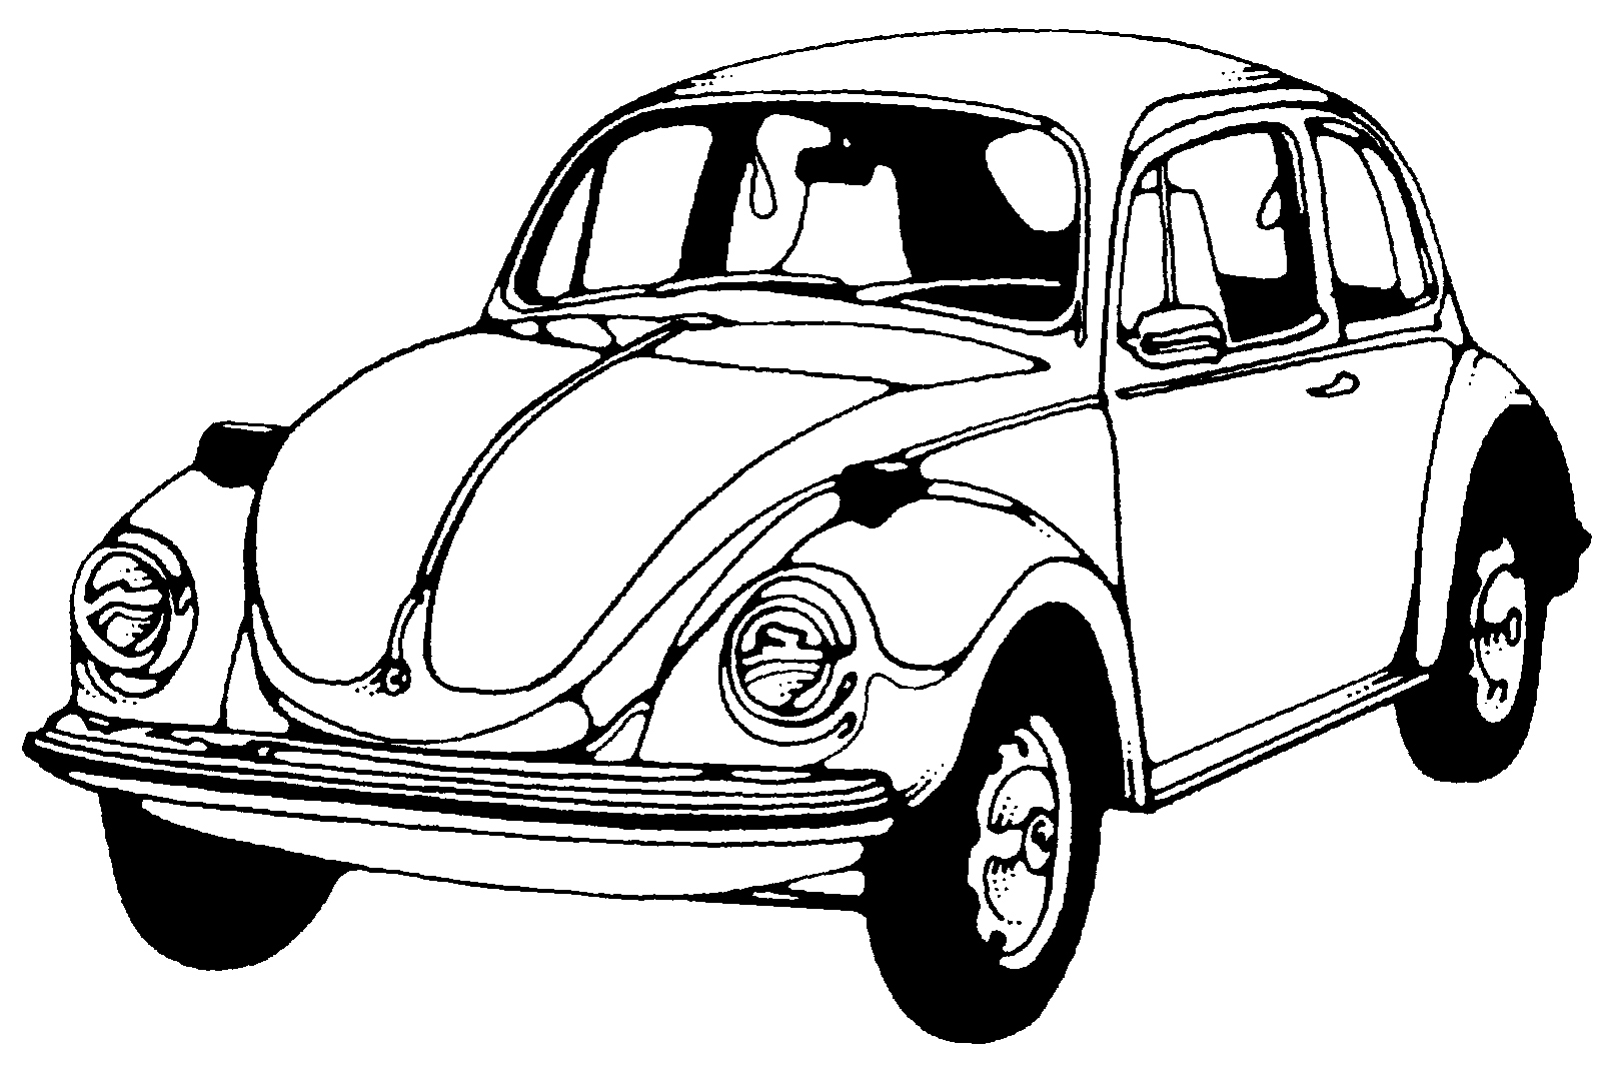 Vw Beetle Art